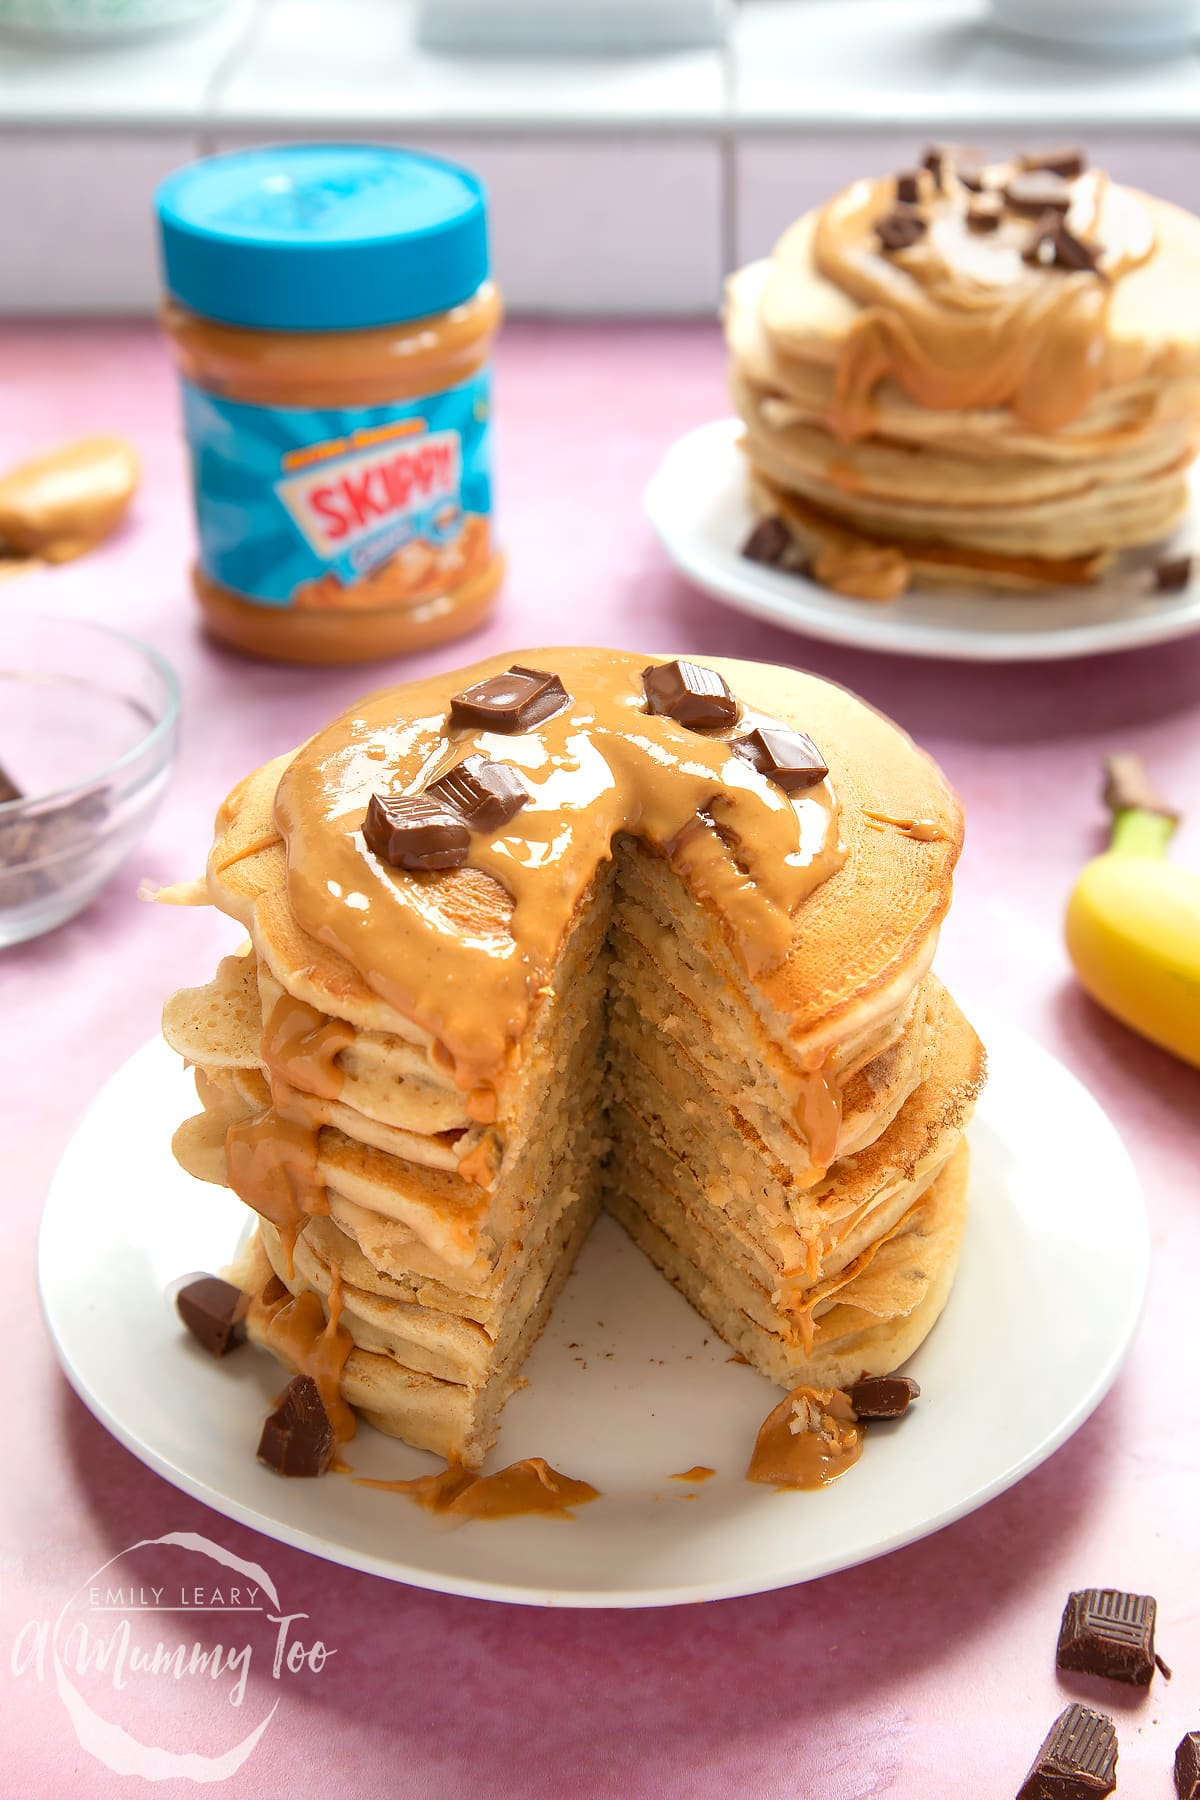 A stack of vegan peanut butter banana pancakes on a white plate. The stack is drizzled with more peanut butter and scattered with chunks of vegan chocolate. A large slice has been taken out of the whole stack, revealing the fluffy inner.